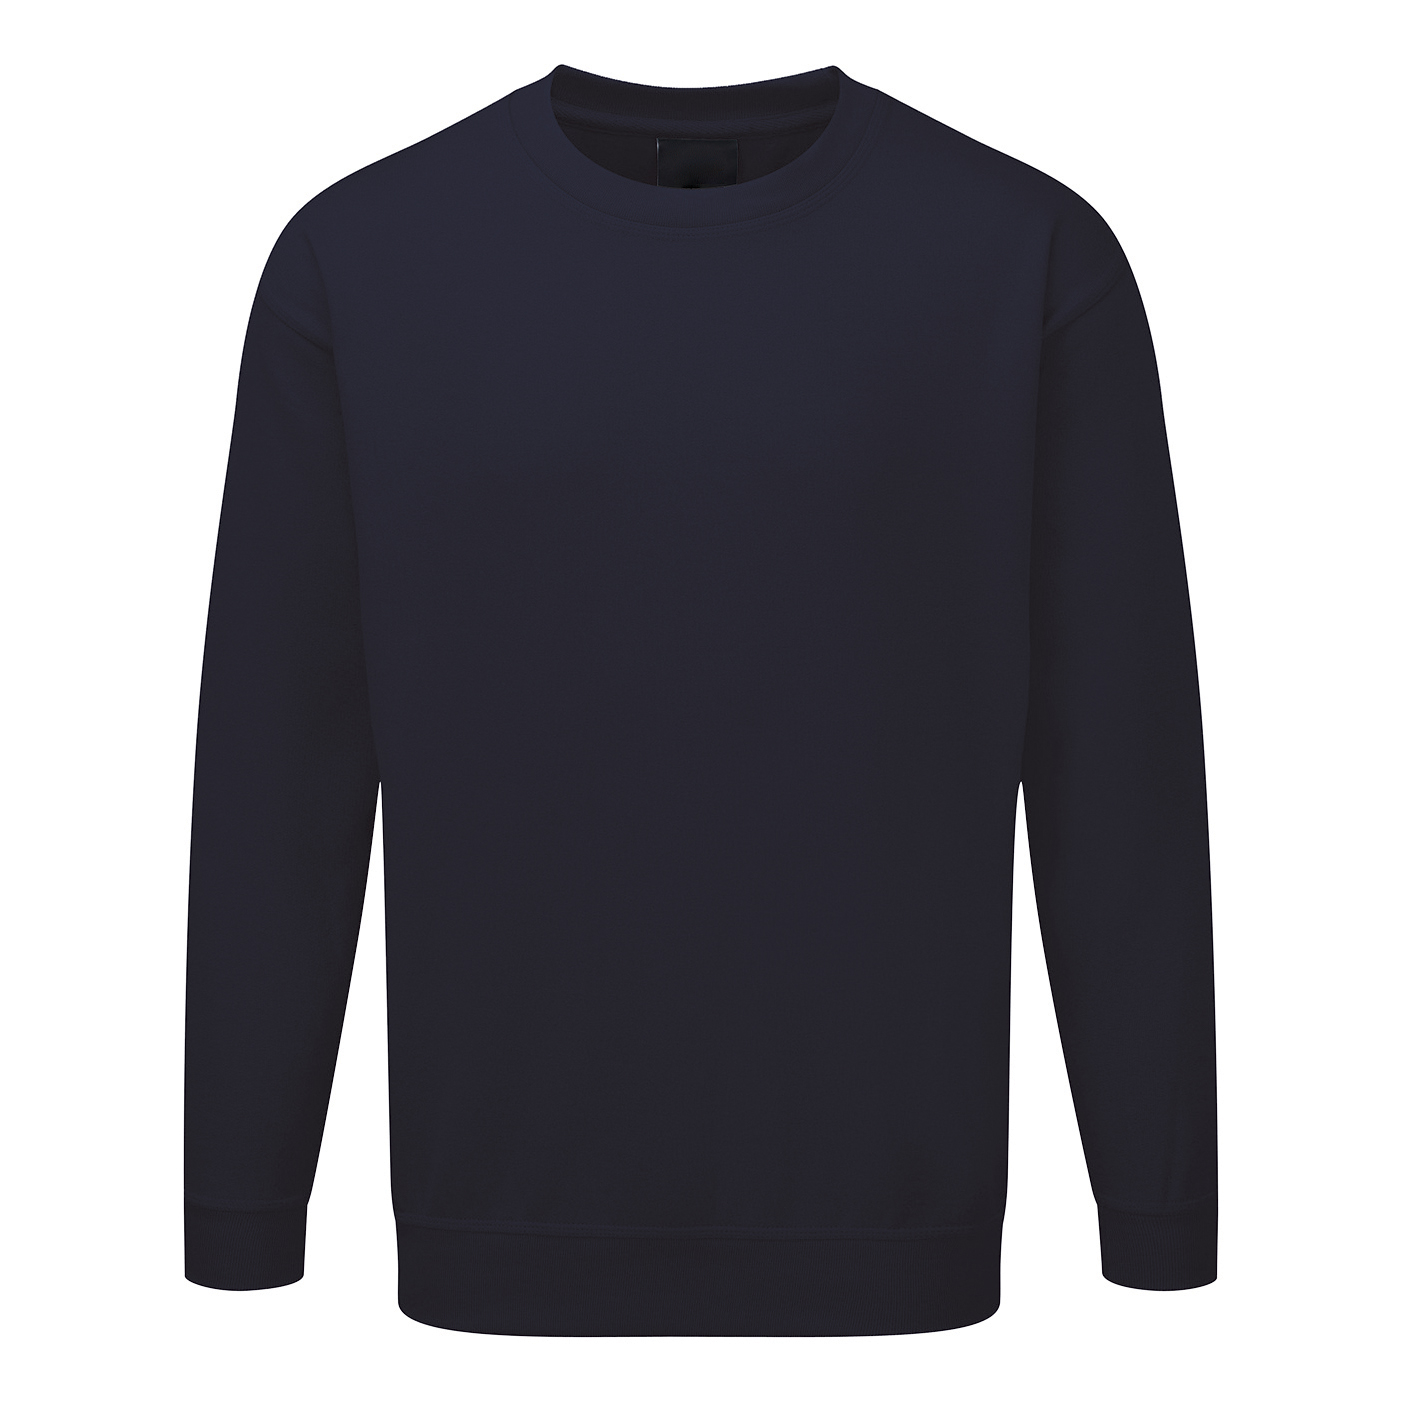 Sweatshirts / Jumpers / Hoodies Click Workwear Sweatshirt Polycotton 300gsm 4XL Navy Blue Ref CLPCSN4XL *1-3 Days Lead Time*